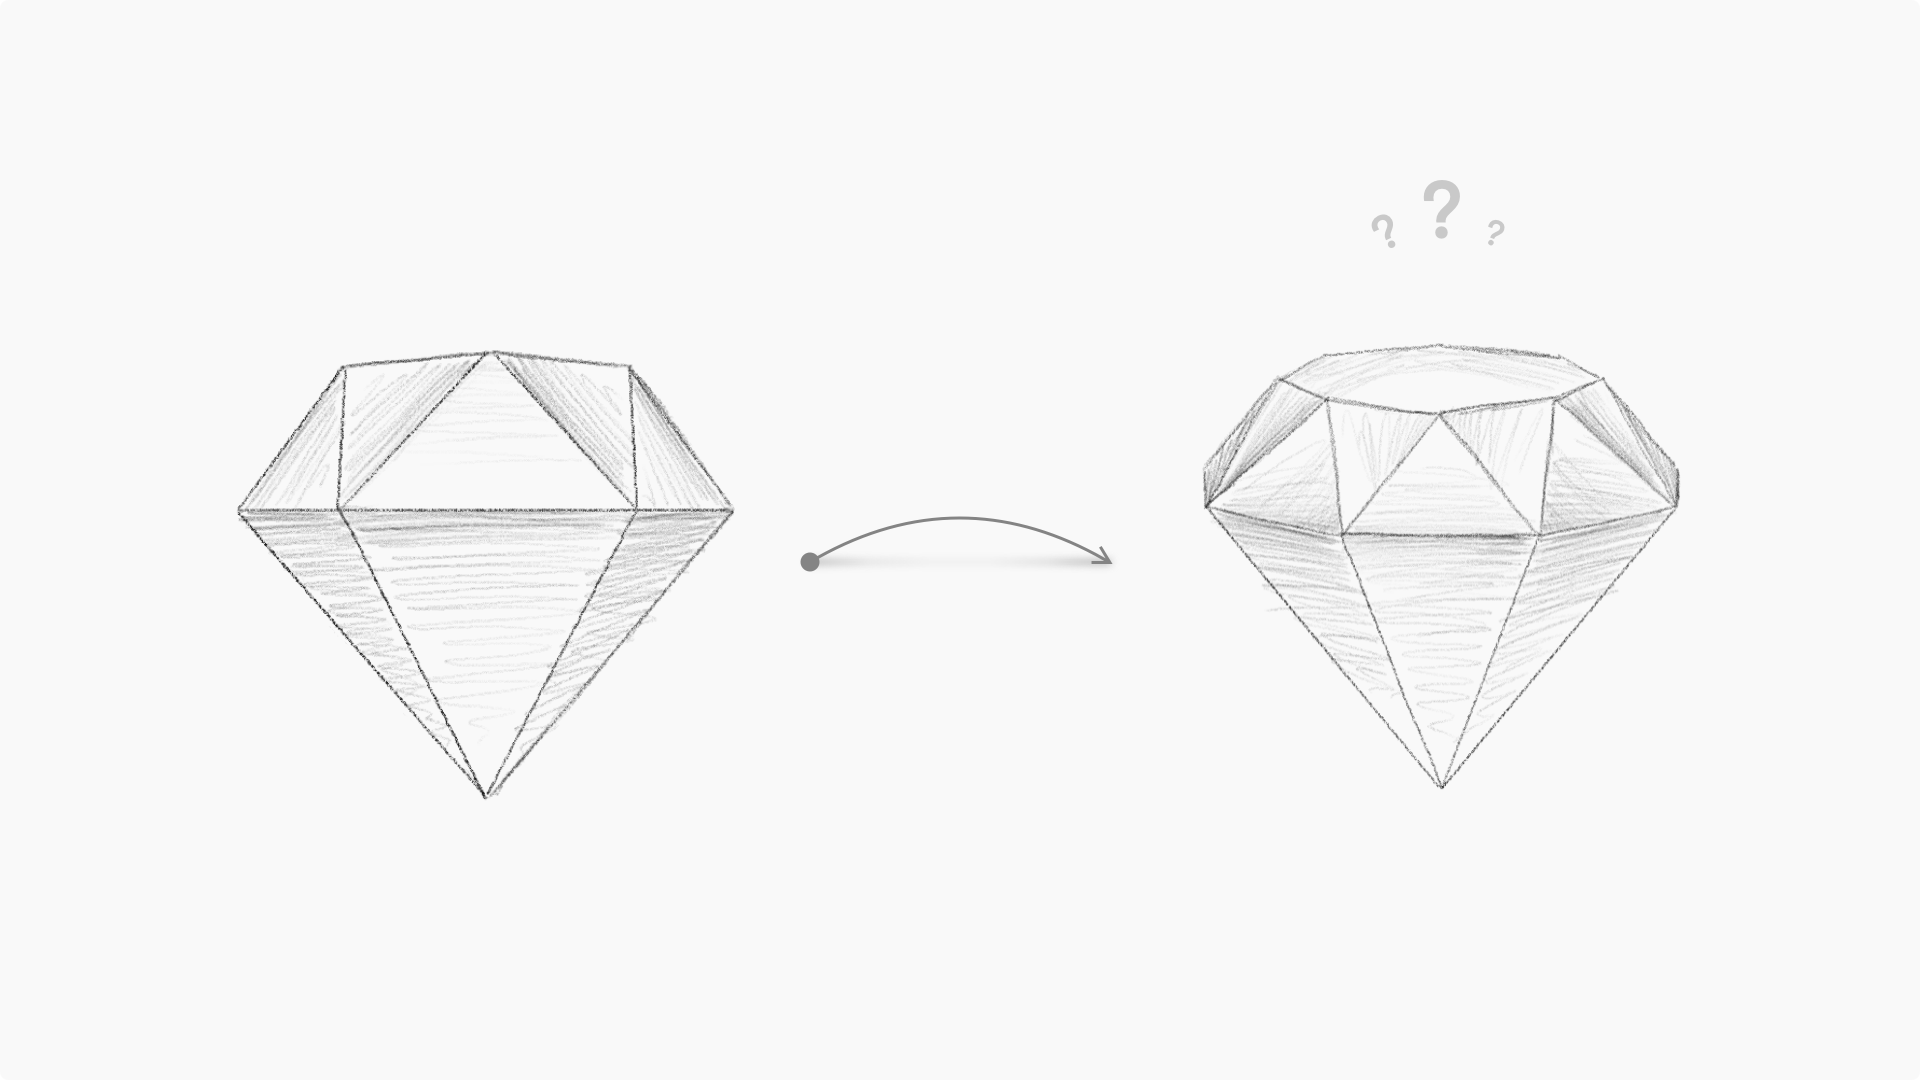 An illustration showing the two diamond designs that Prekesh worked with during development.